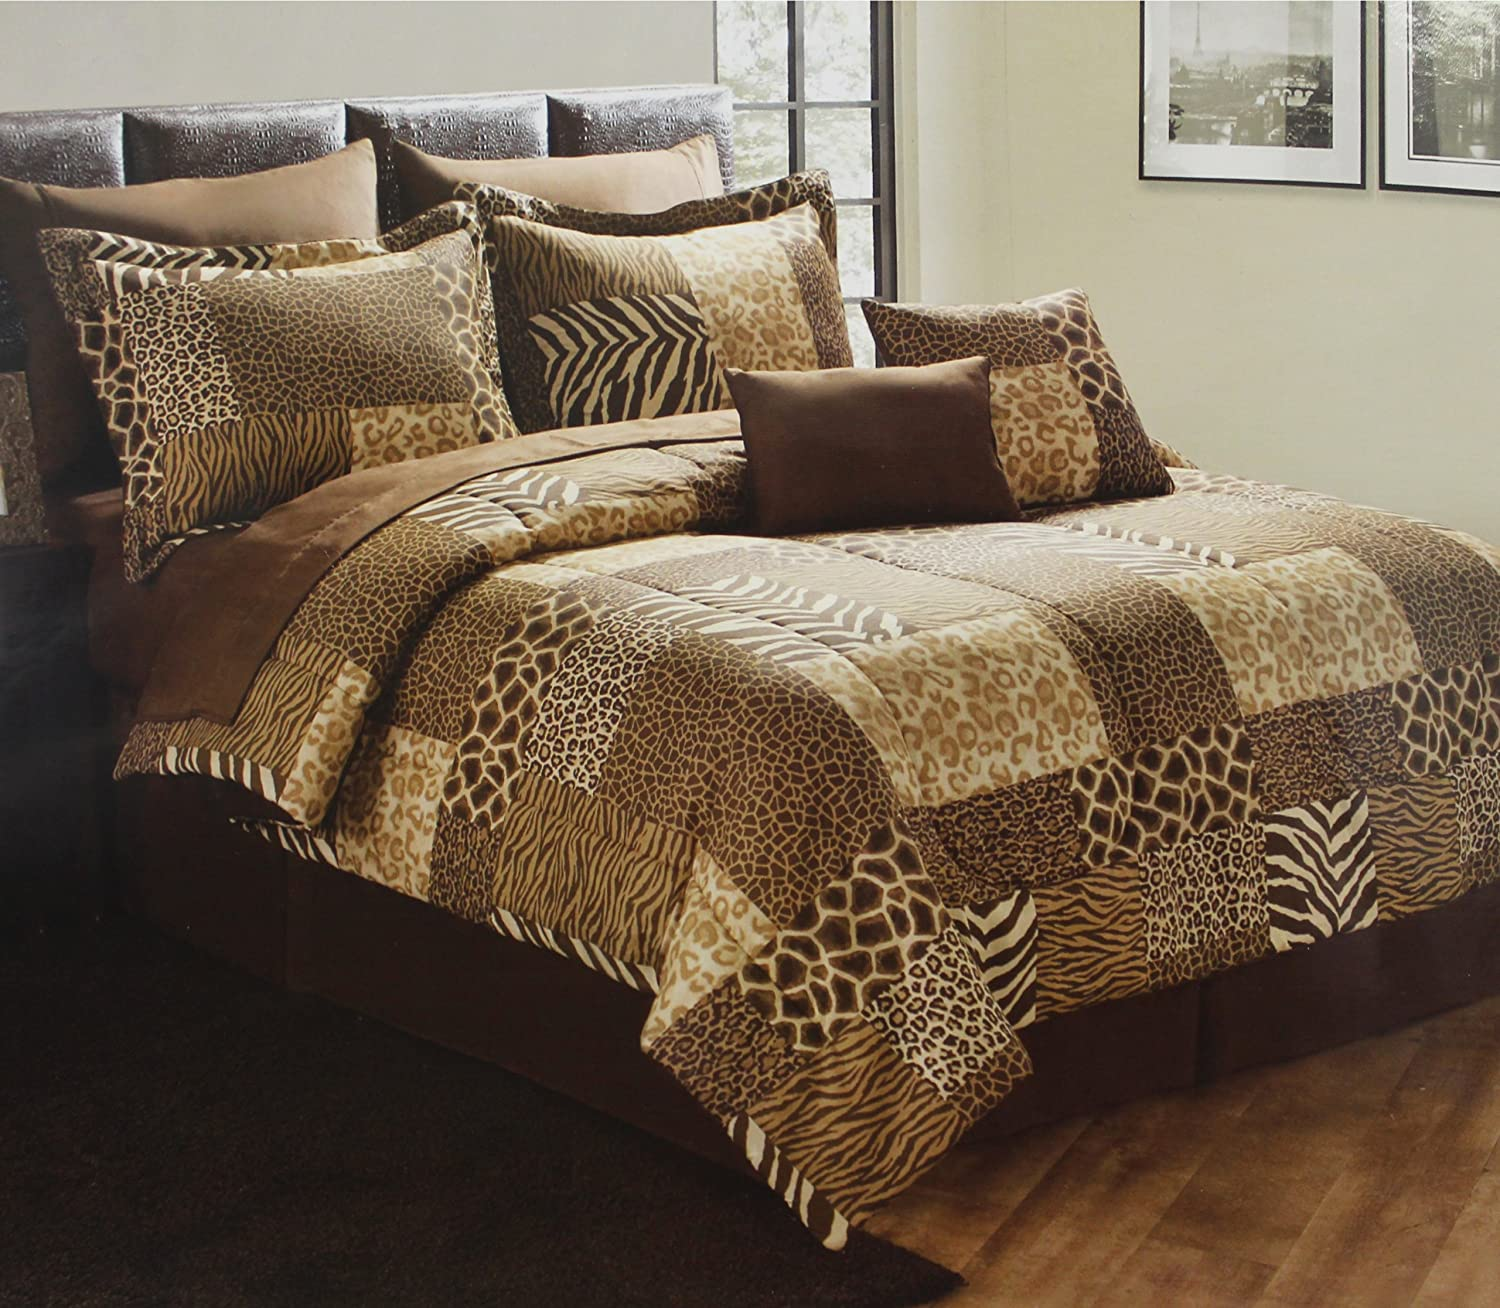 leopard print bedding sets design magazine